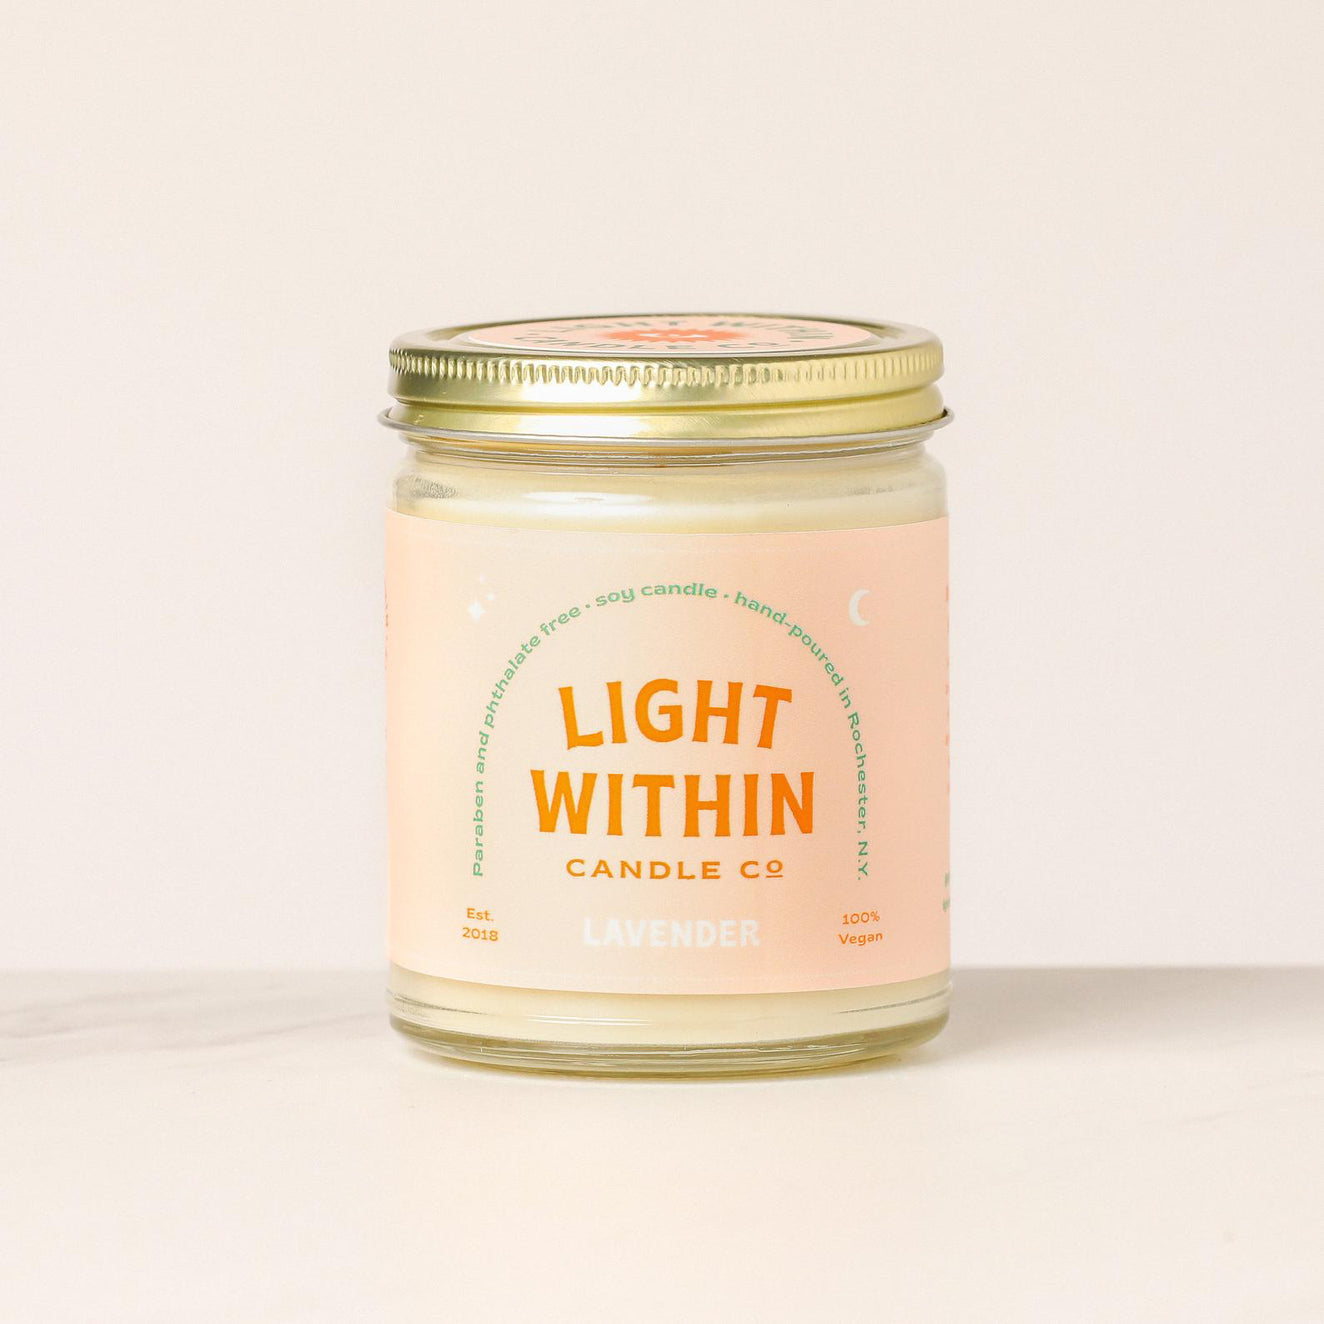 8oz Eucalyptus Mint Light Within Candle Co. Candle